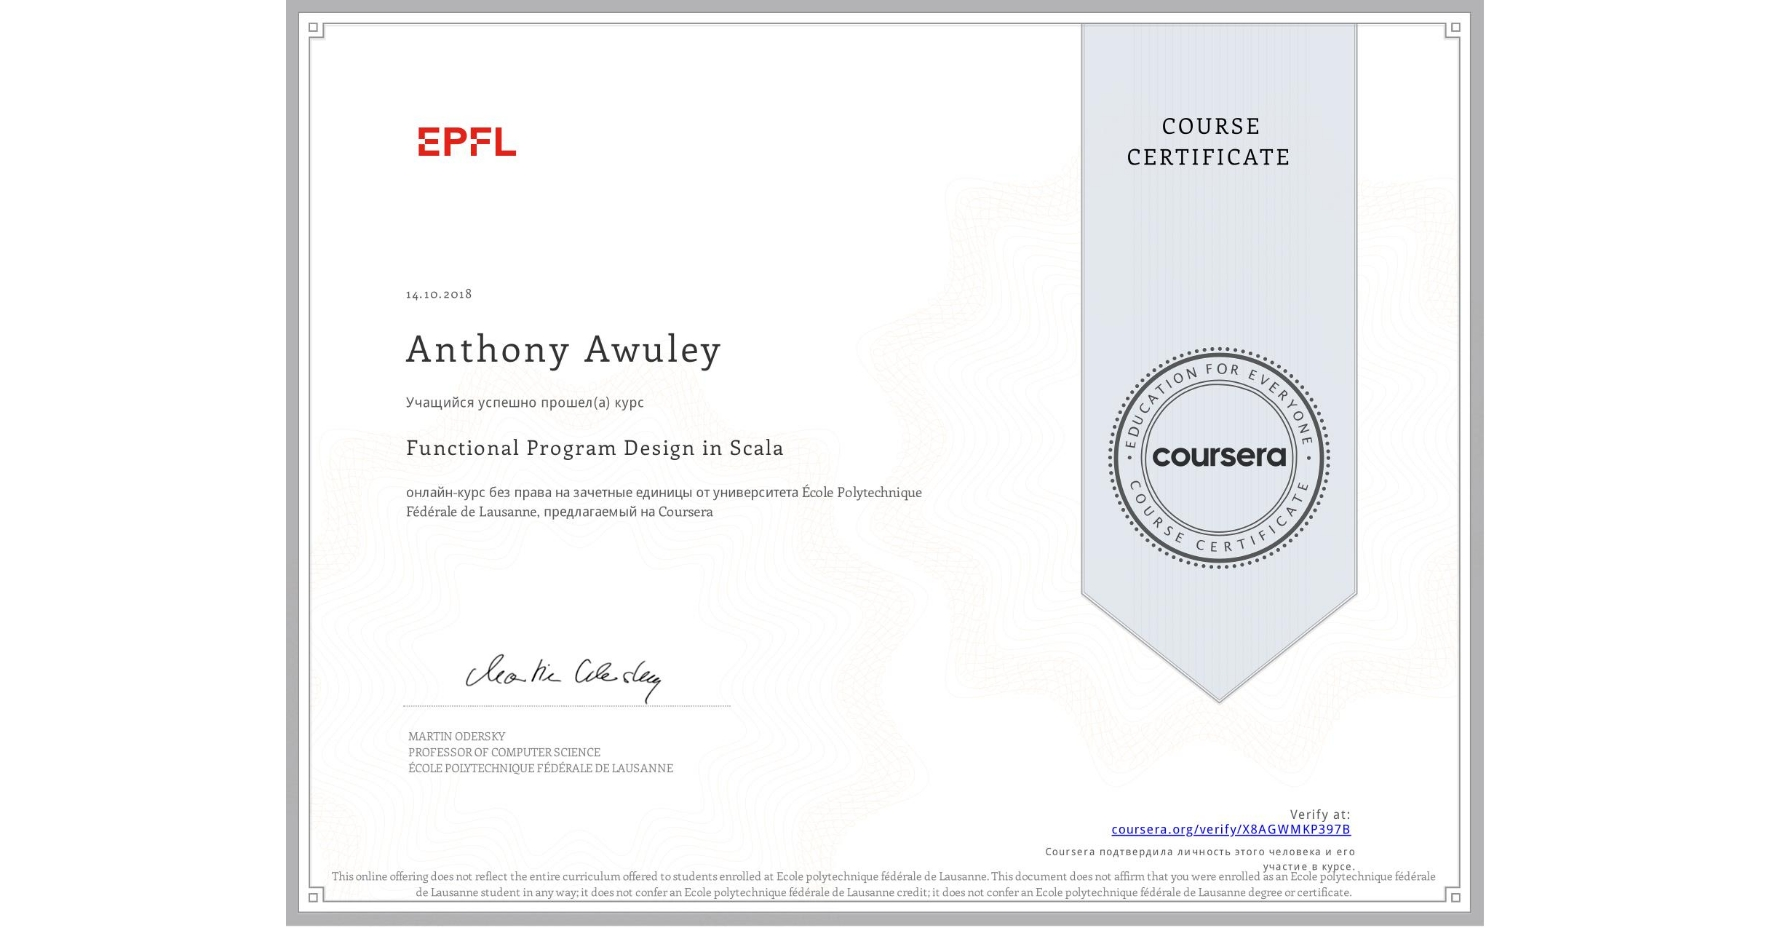 View certificate for Anthony Awuley, Functional Program Design in Scala, an online non-credit course authorized by École Polytechnique Fédérale de Lausanne and offered through Coursera